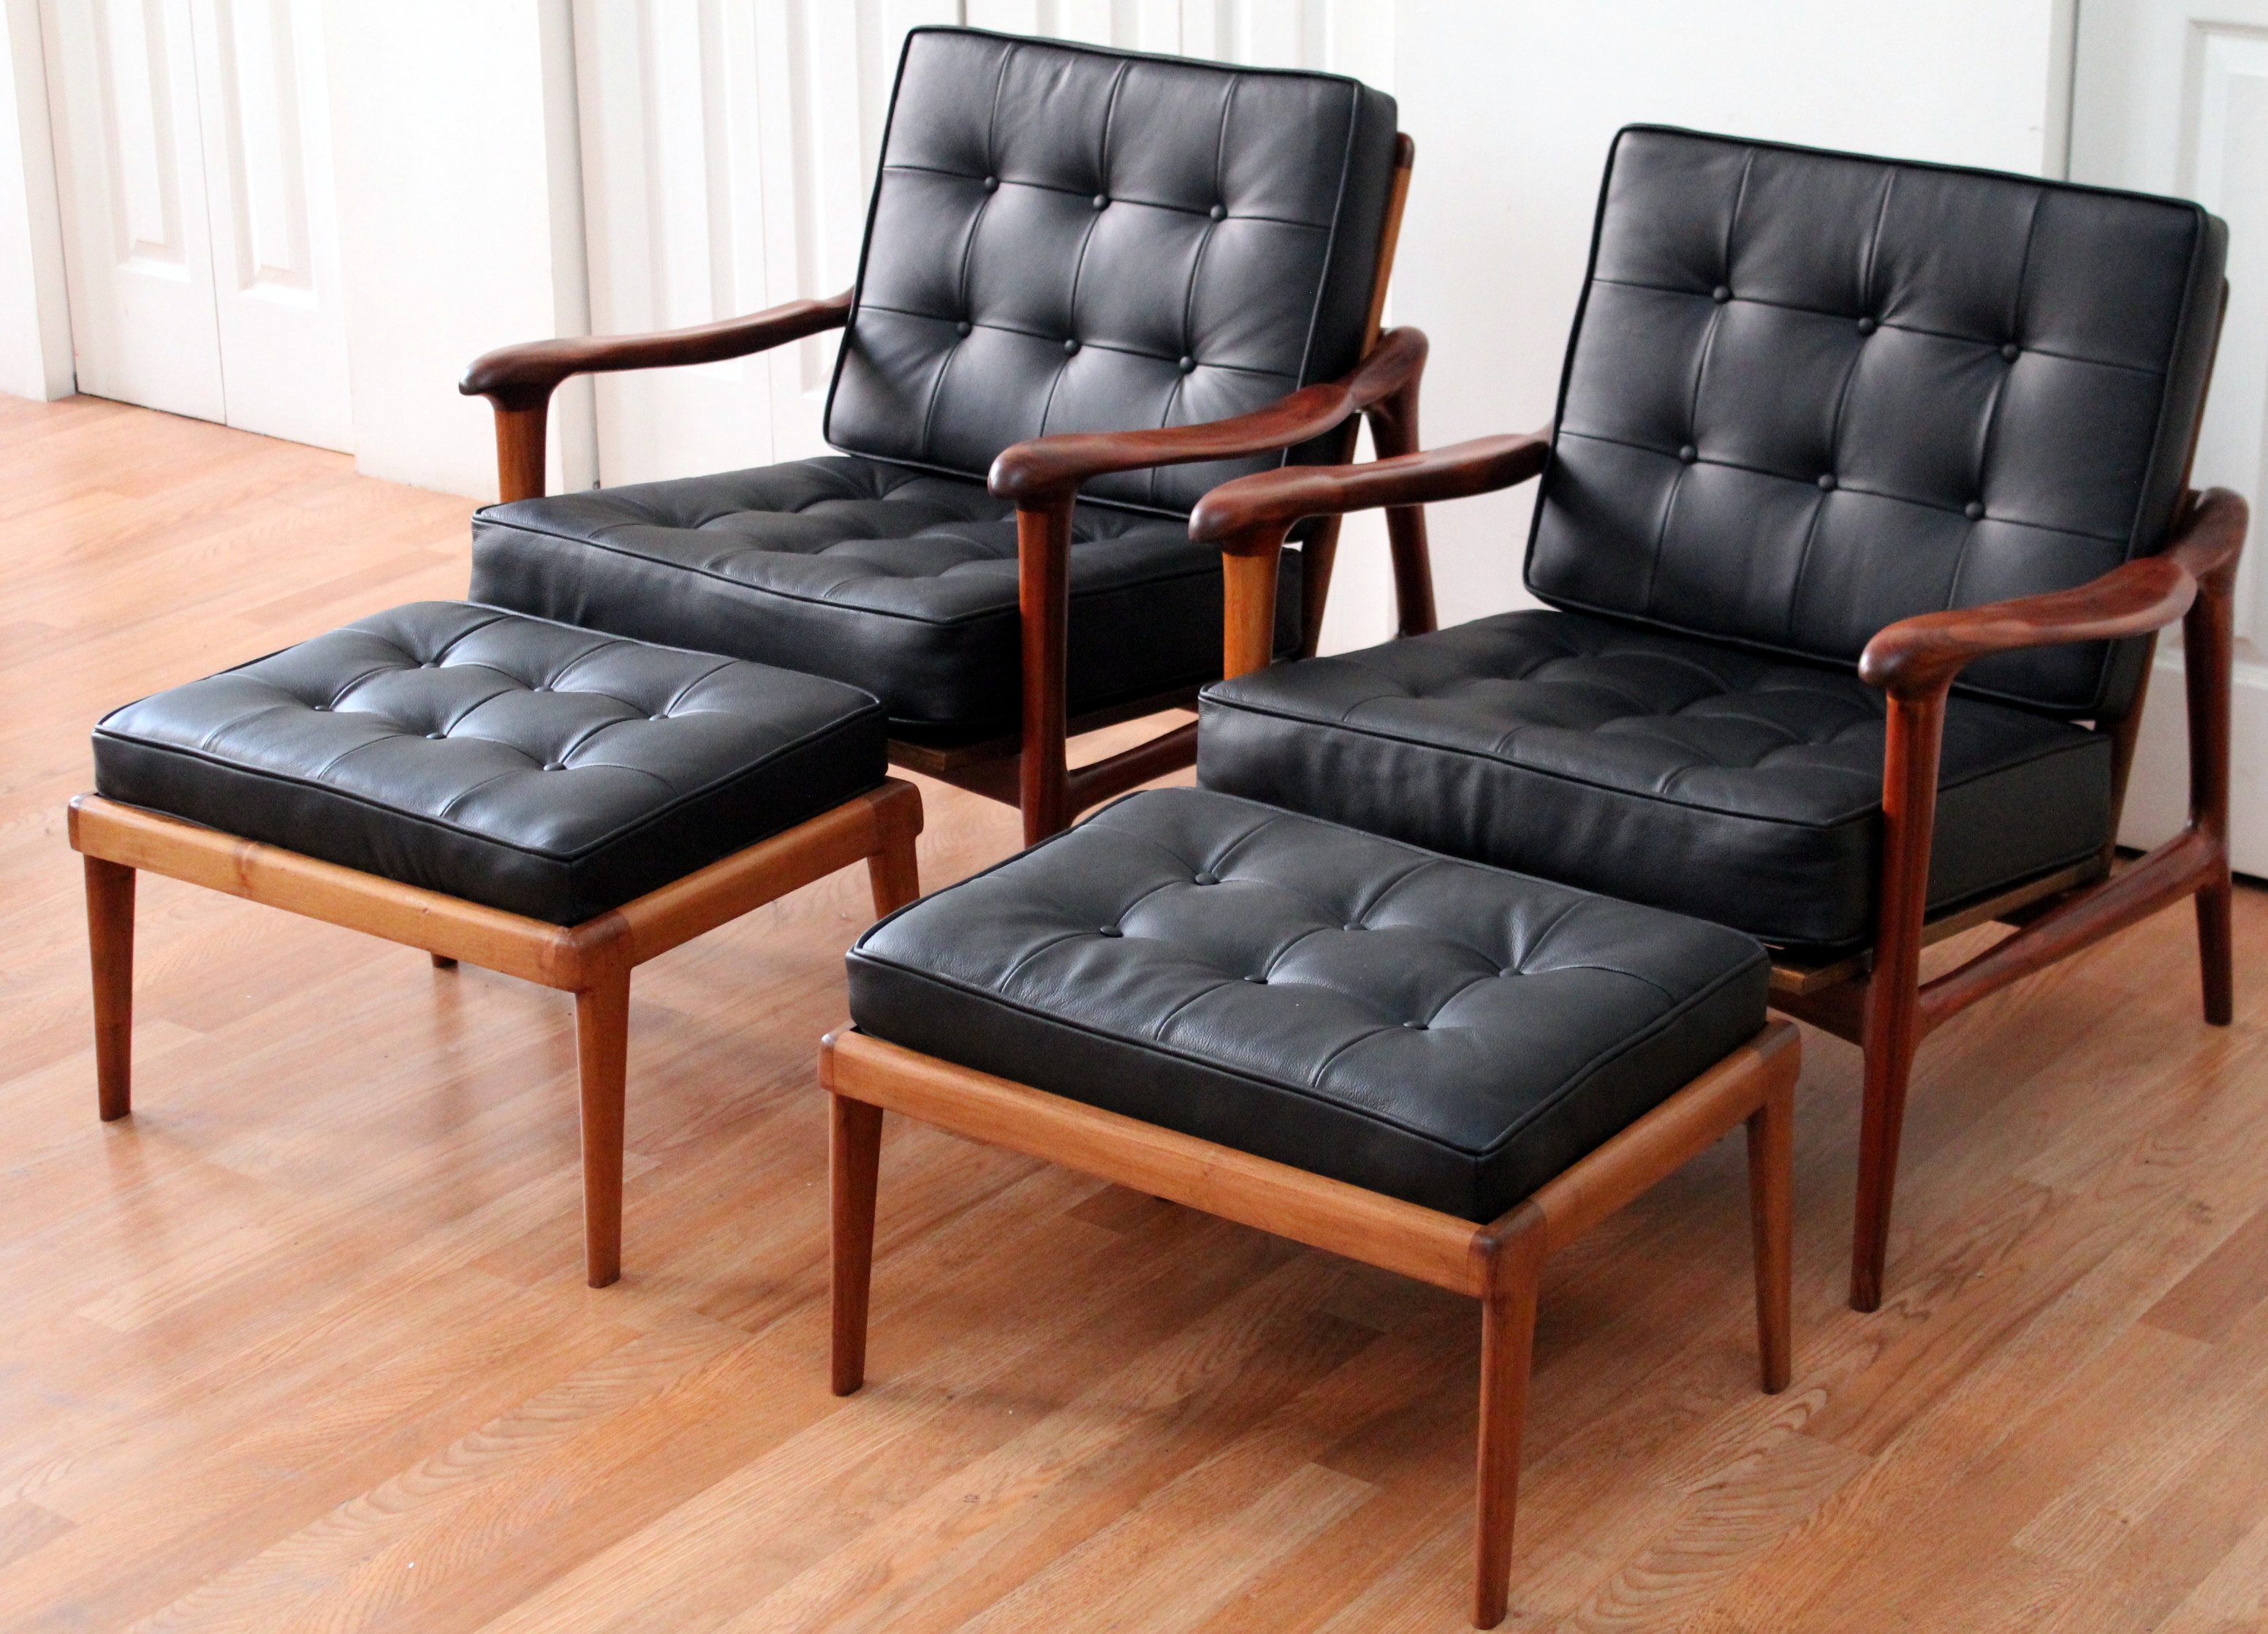 Black Leather Lounge Chair American Studio Craft Carved Sculptural Solid Teak Lounge Chairs Footstools